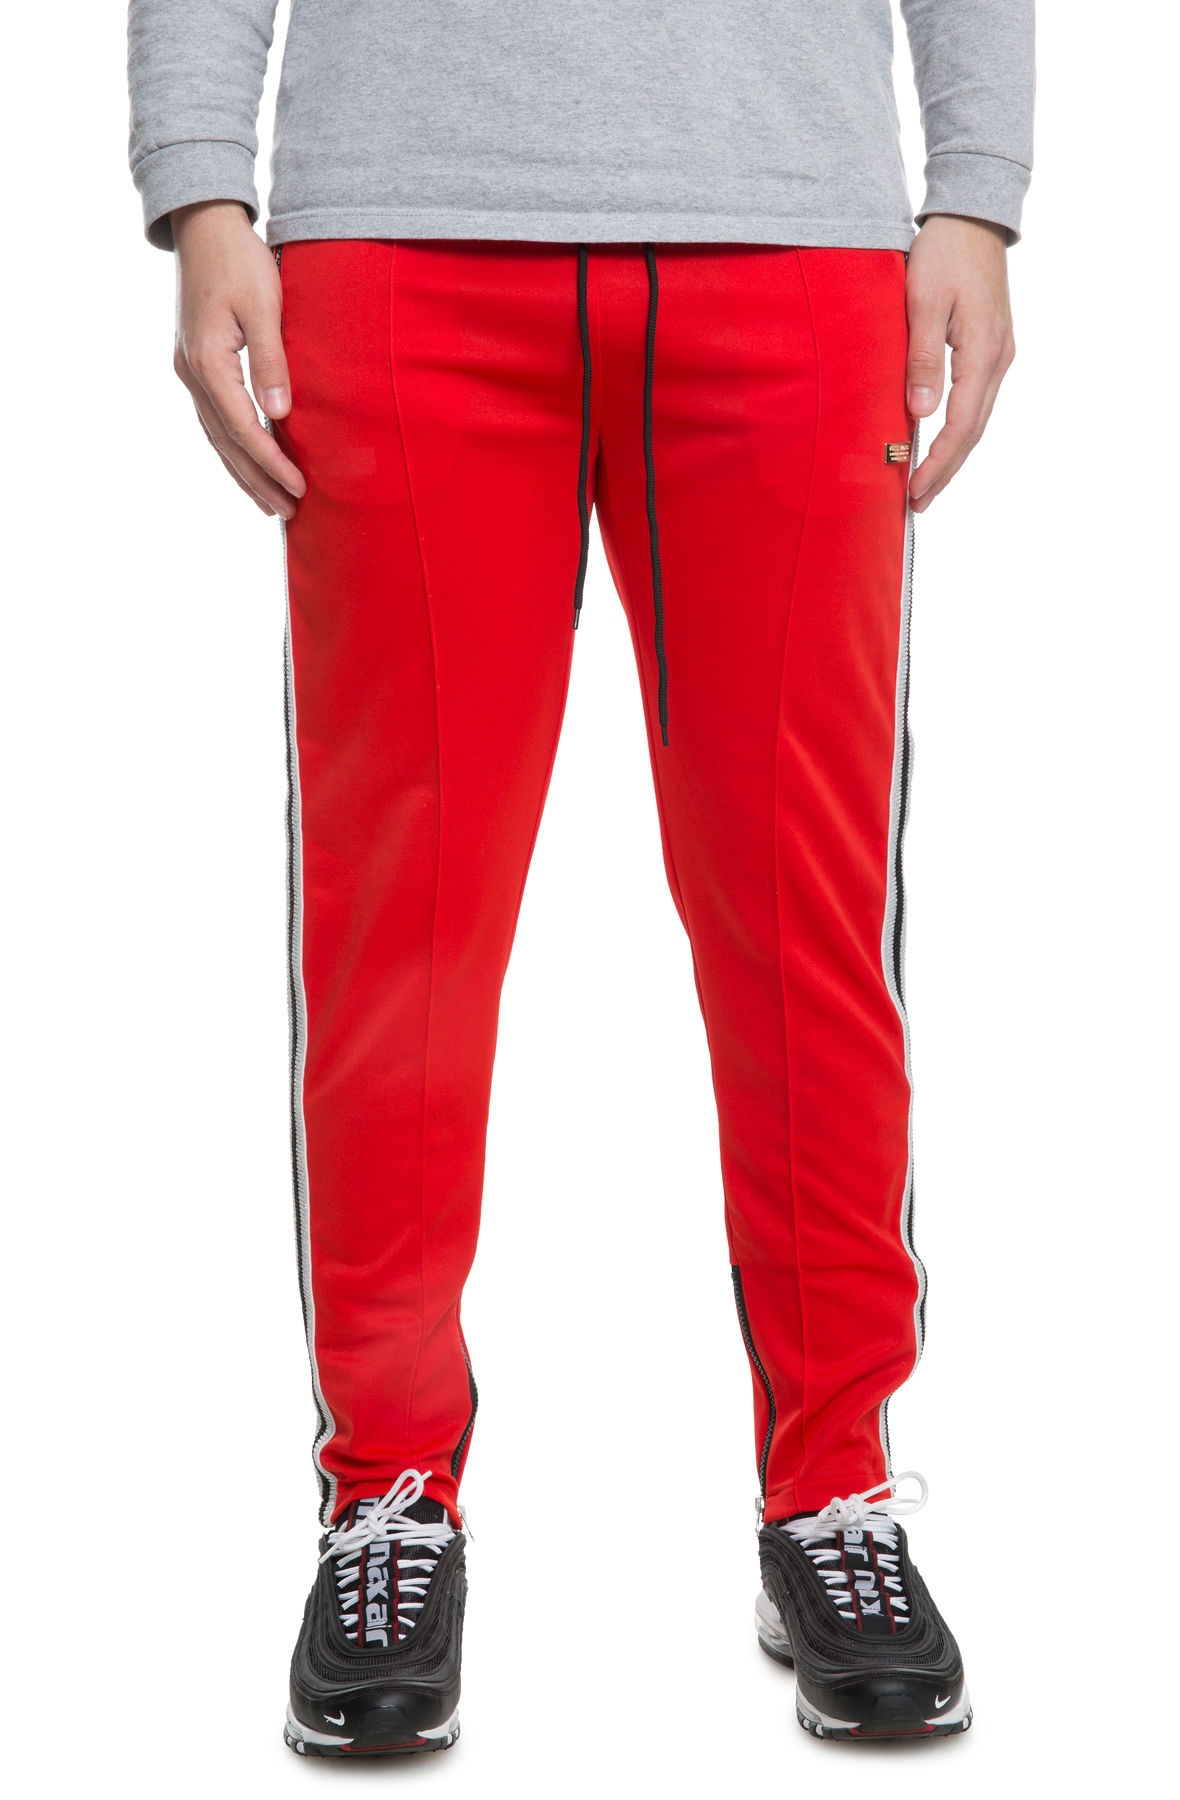 Image of The Melrose Track Pants in Red